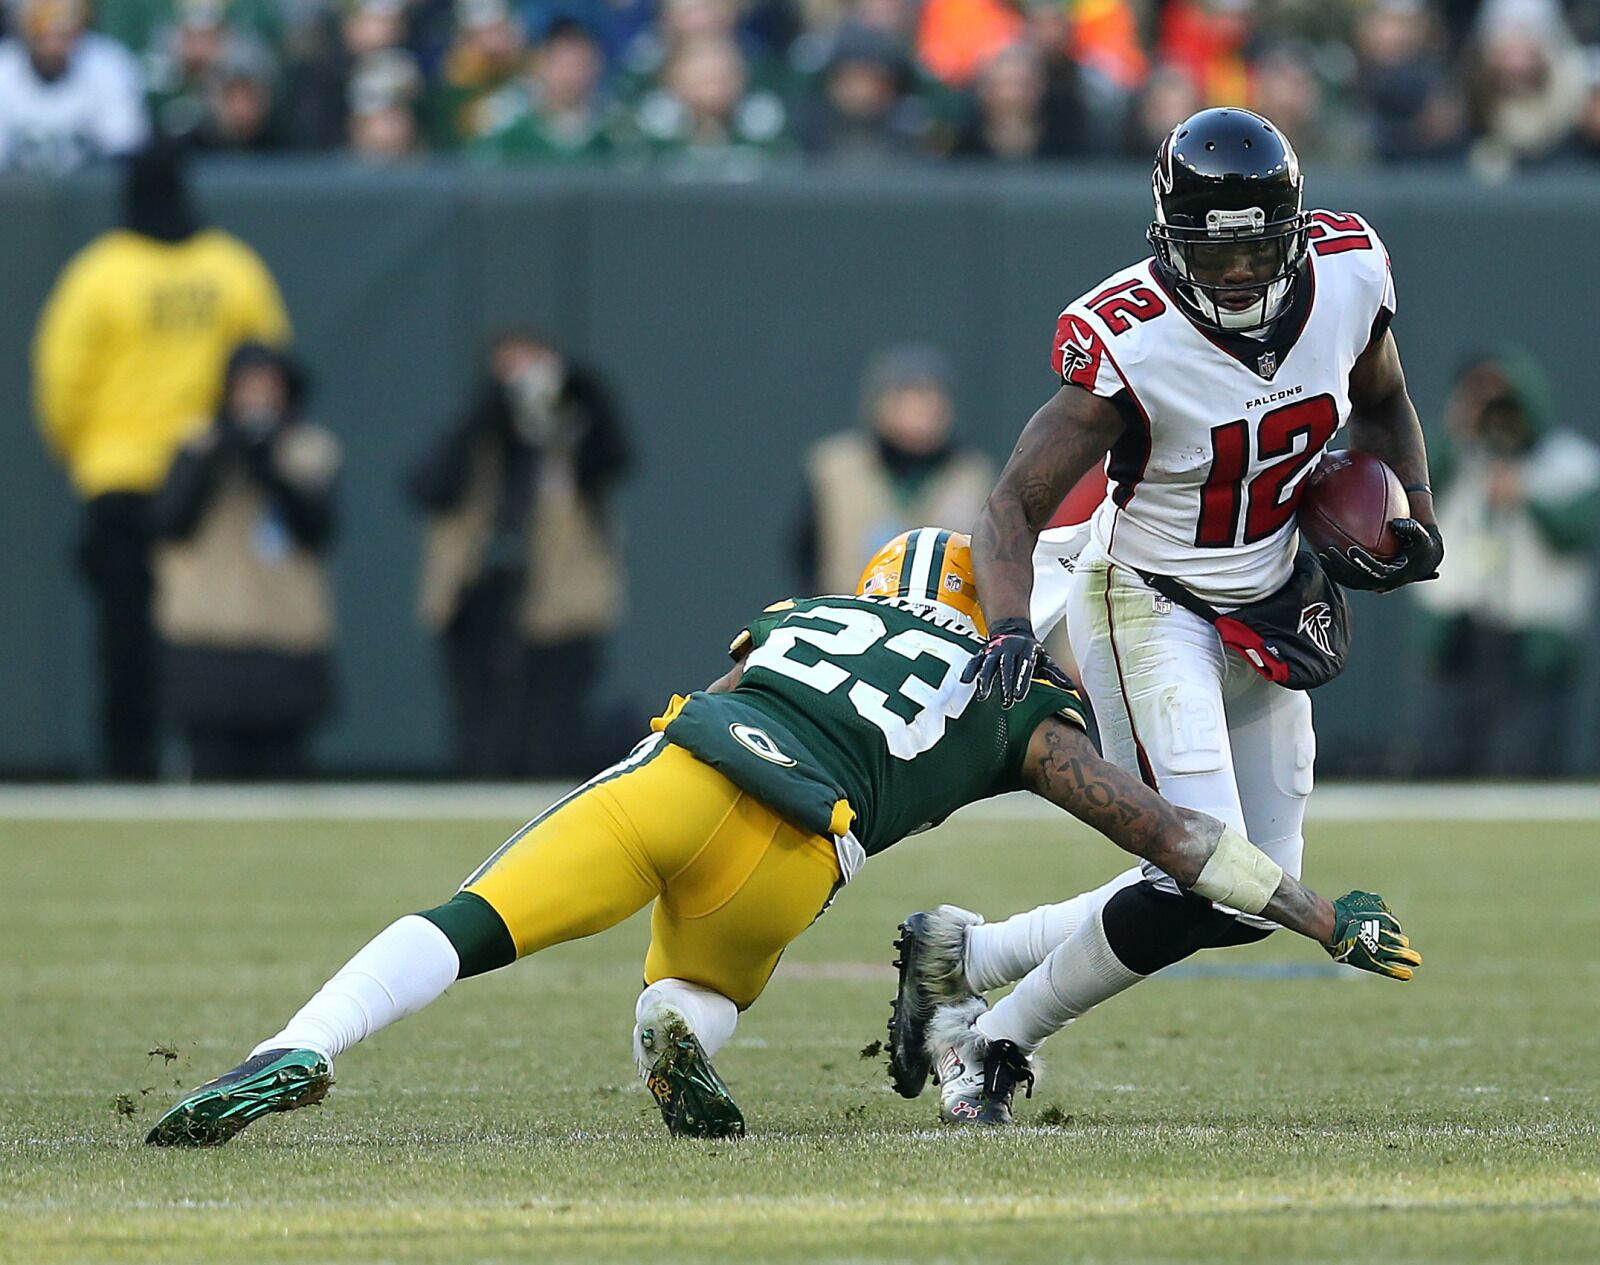 Packers: Positives, negatives from Week 14 vs. Falcons